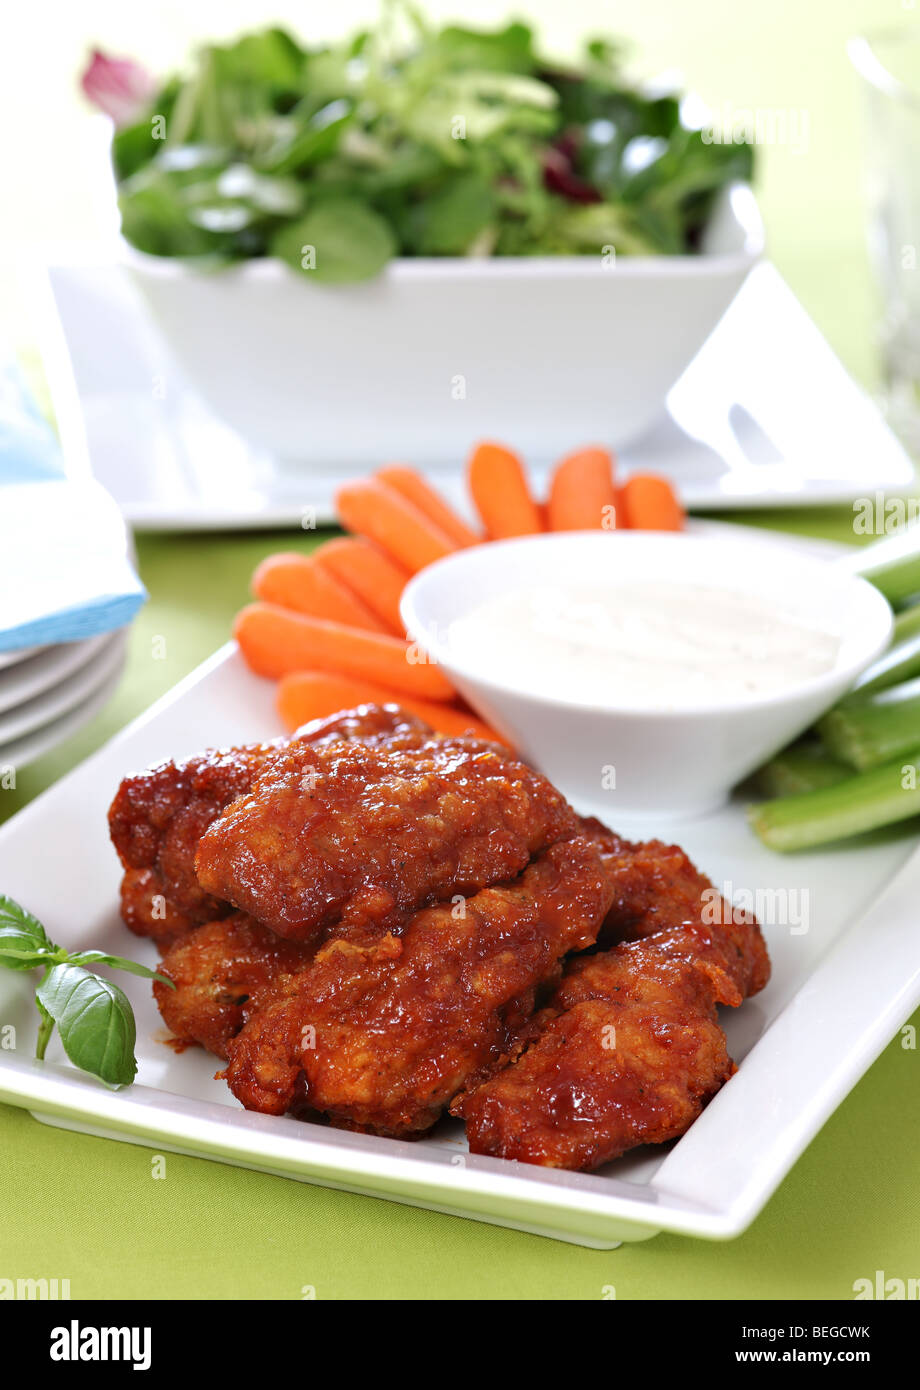 Hot chicken wings - Stock Image